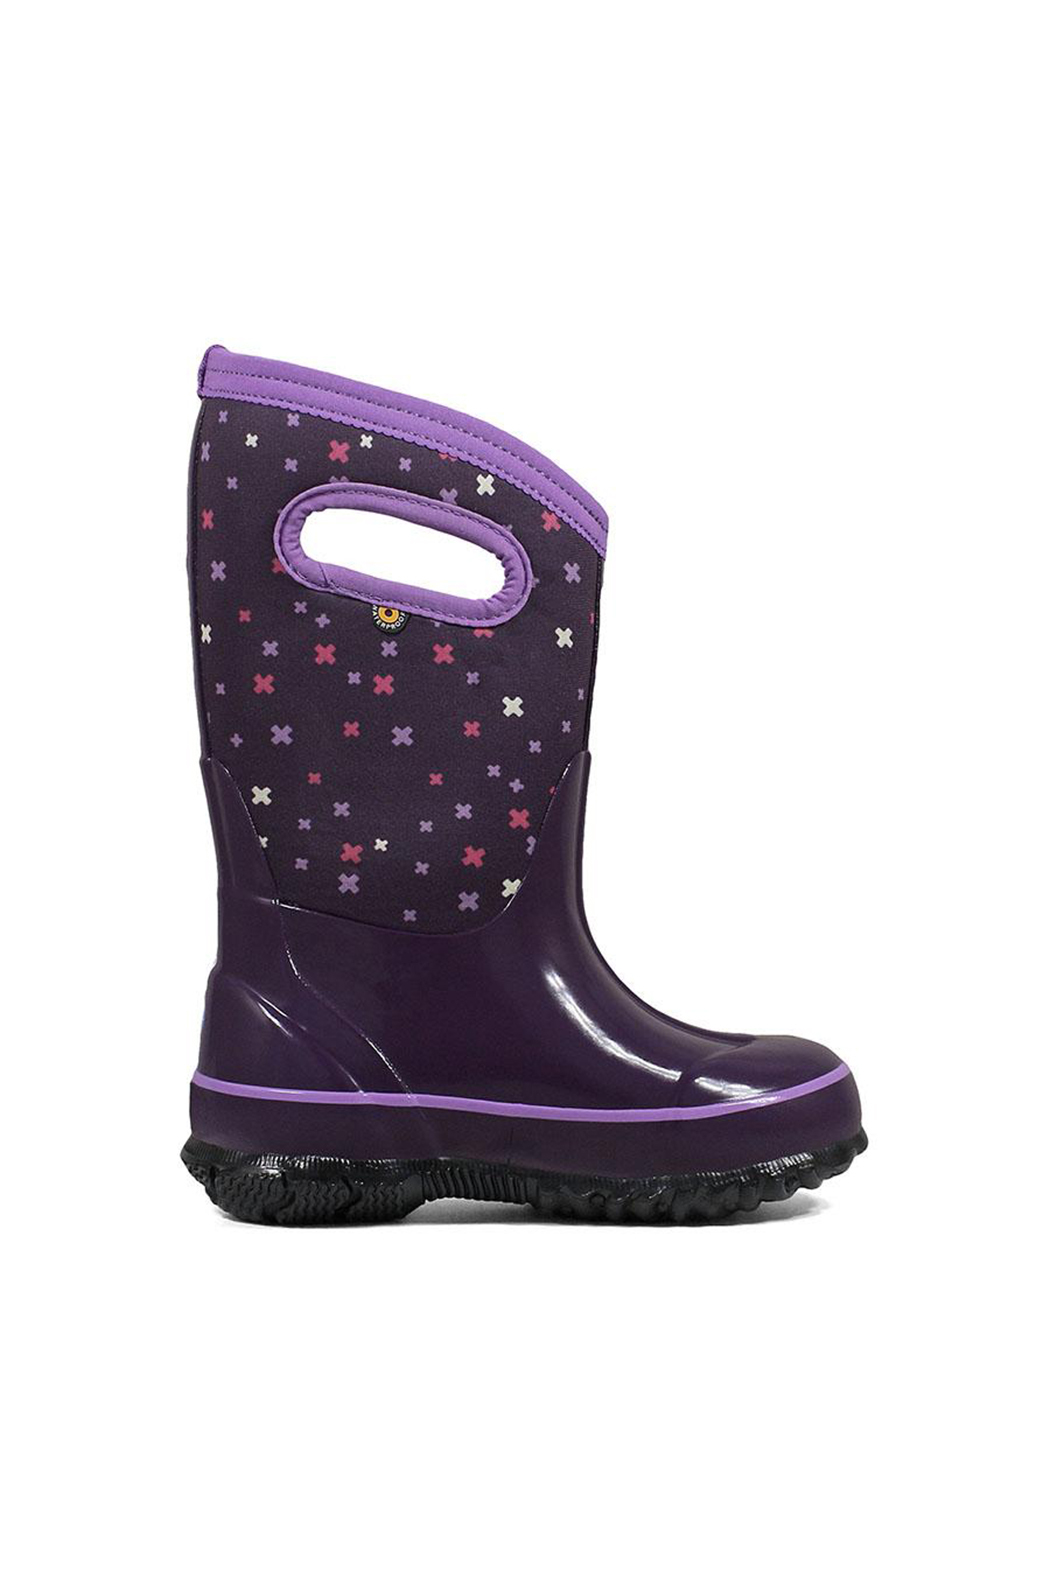 BOGS Classic Plus Kids Insulated Boots - Main Image